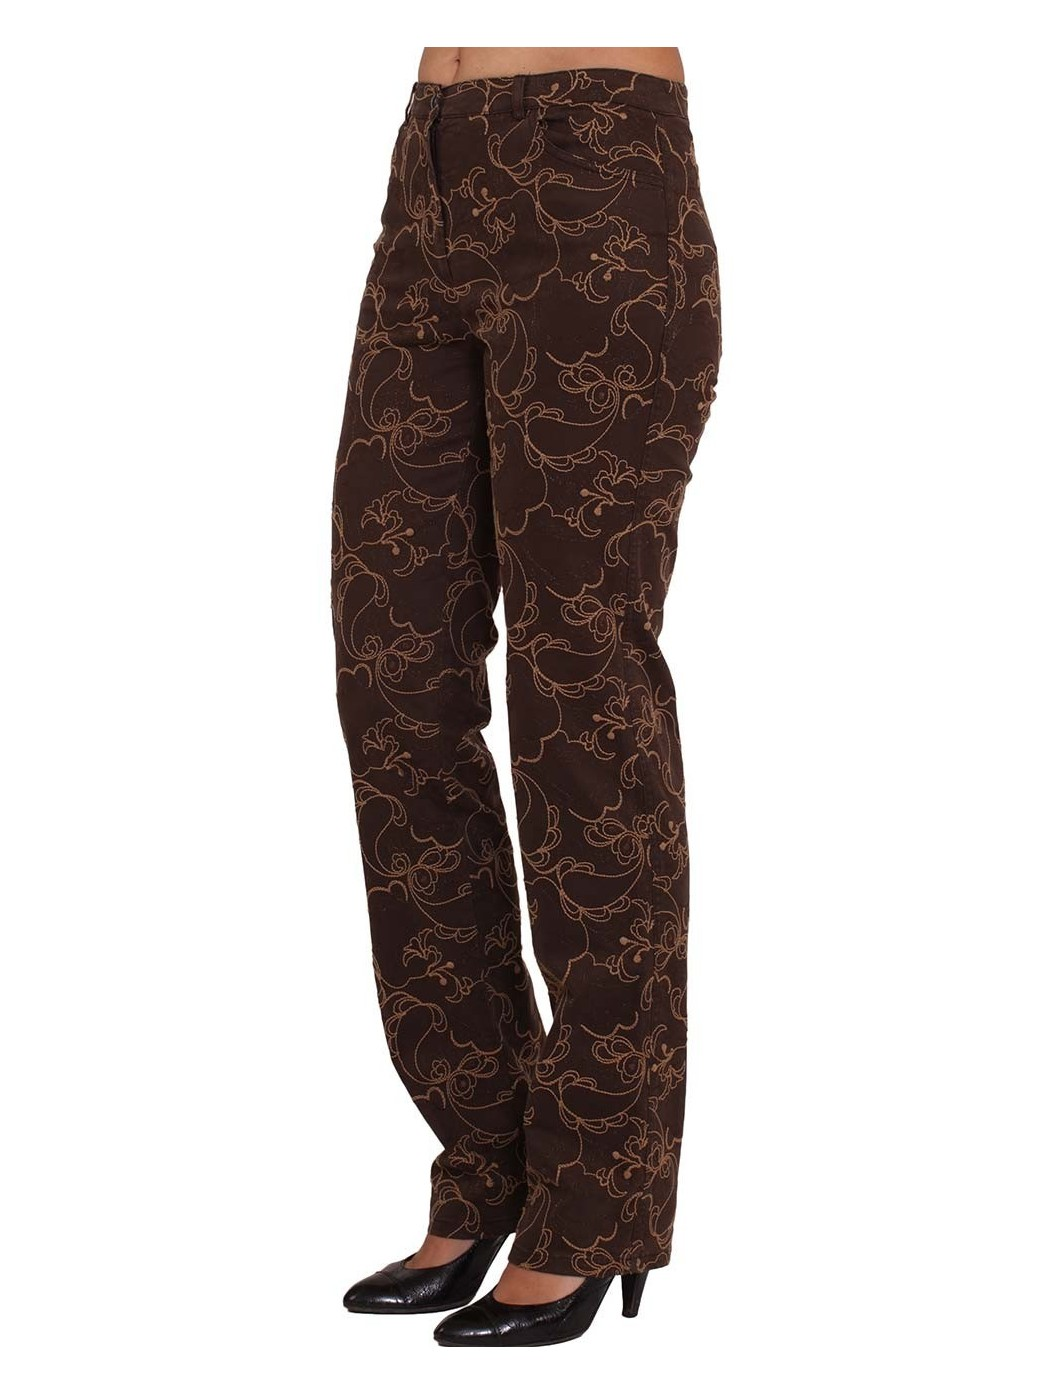 Pucci embroidered trousers